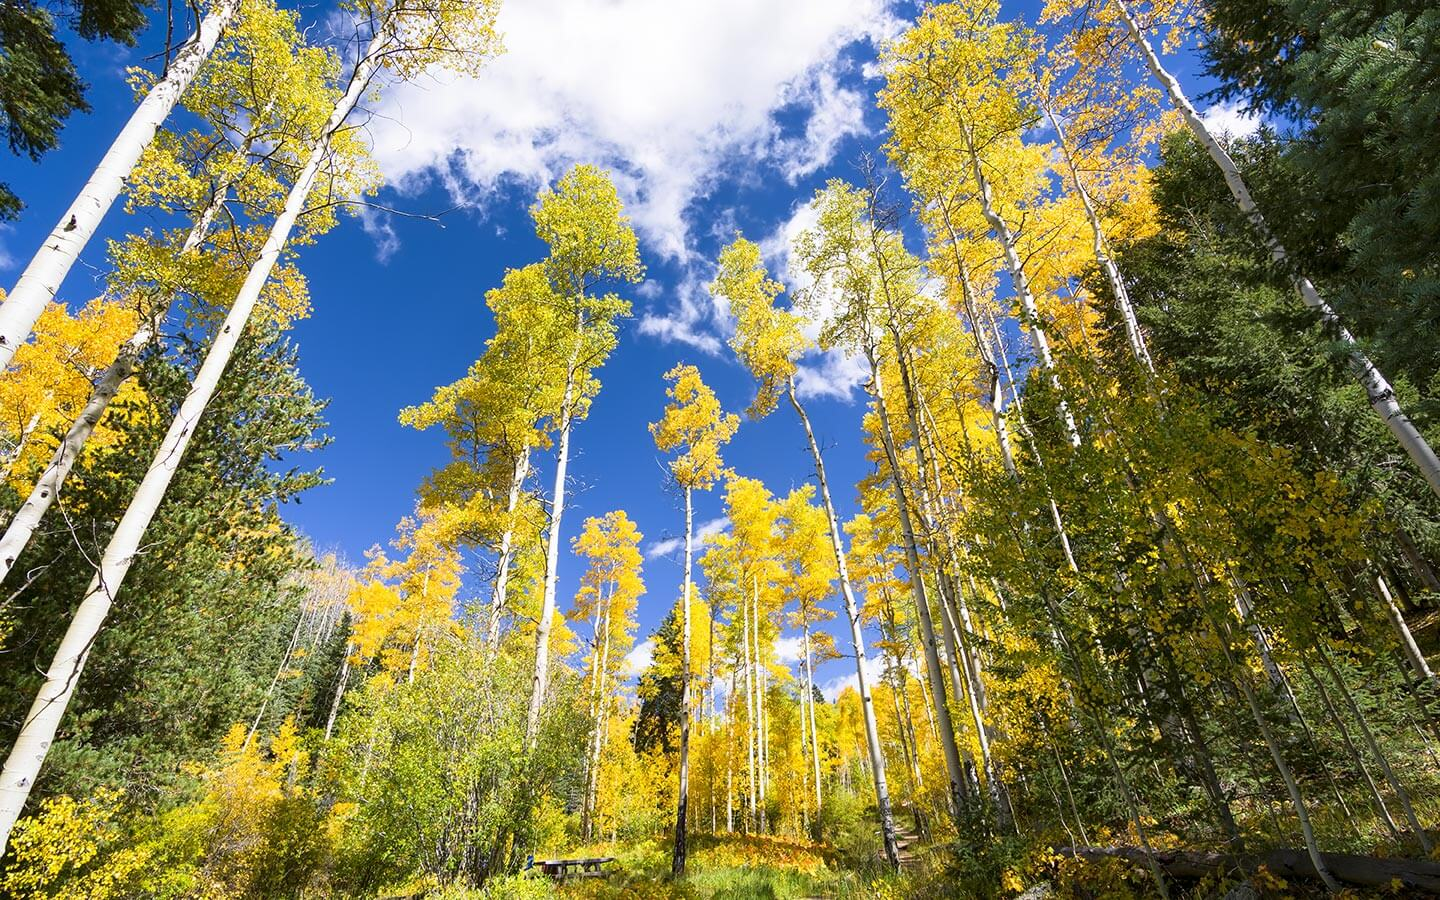 A view of Aspen Forest in New Mexico